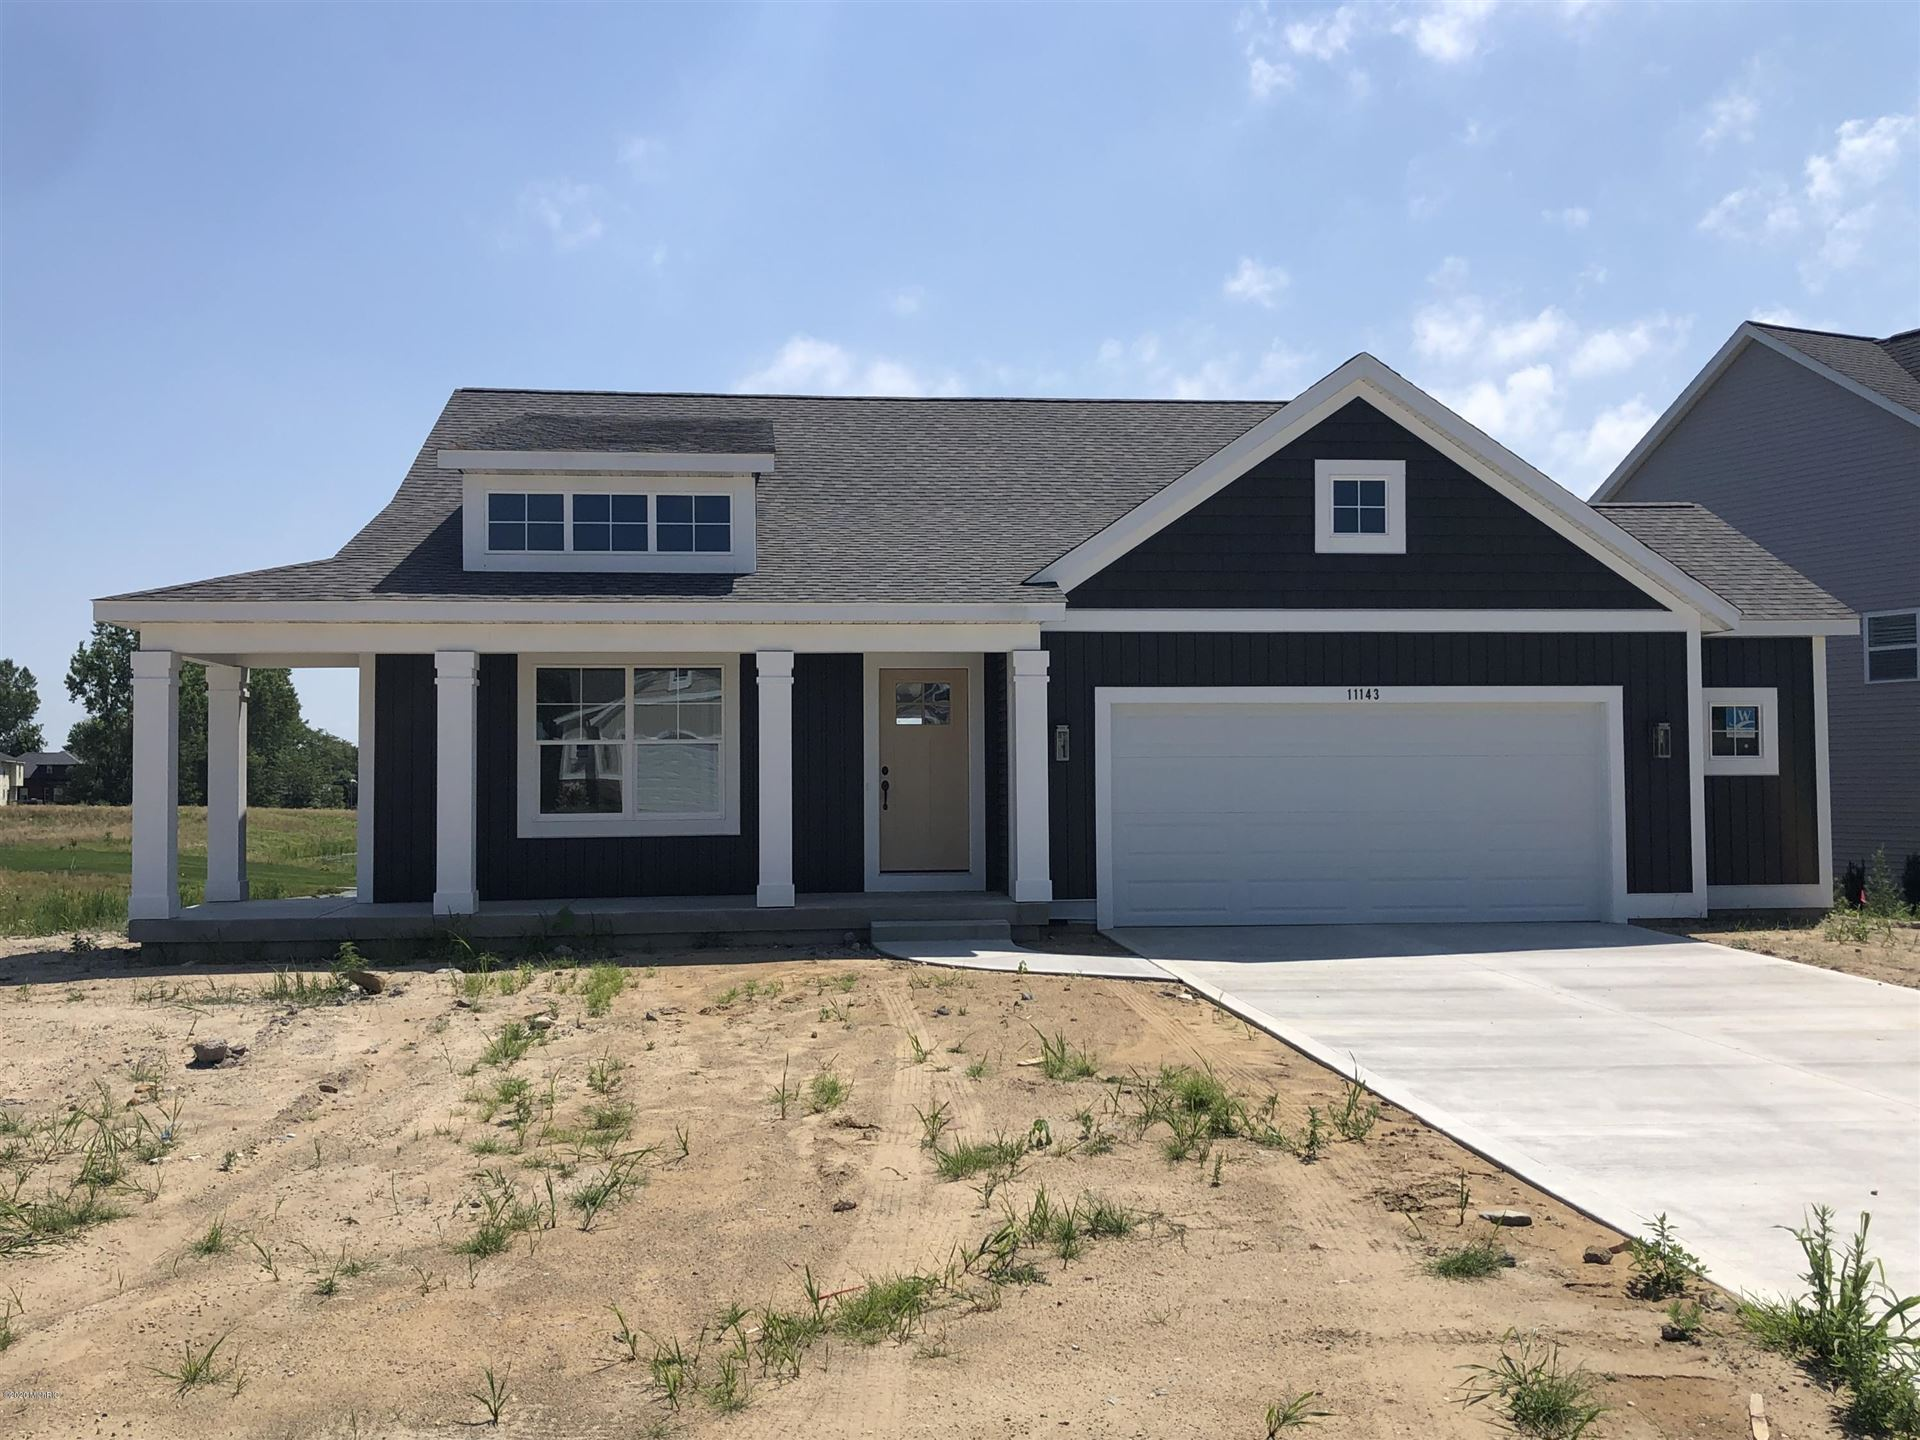 11143 Ryans Way, Holland, MI 49423 - MLS#: 20029375